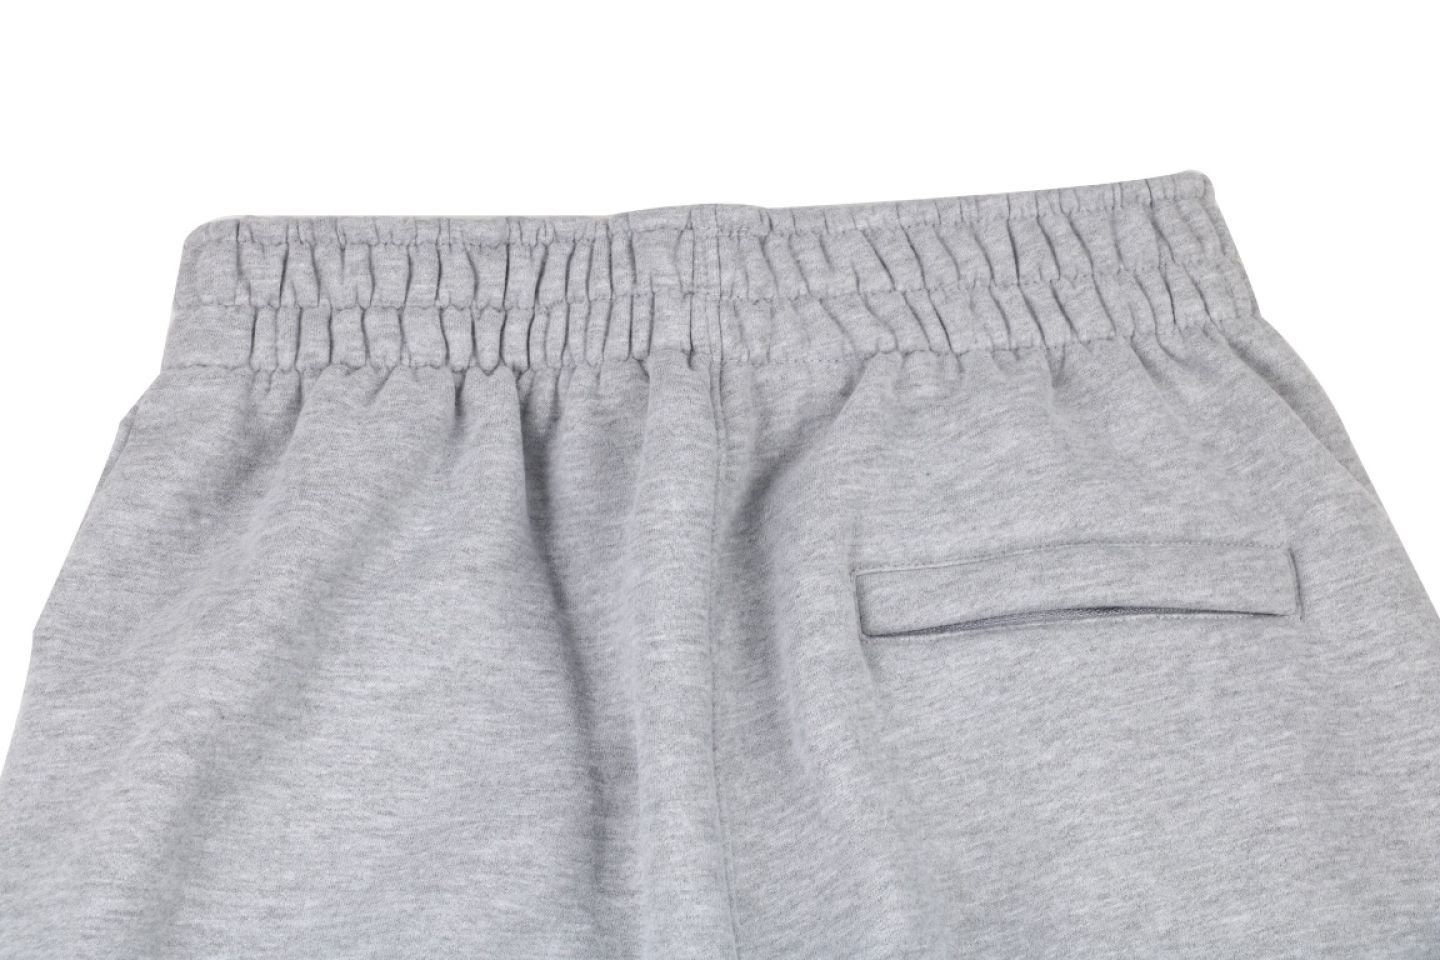 Pants Alexander Wang velvet sweatpants 5 alexander_wang_velvet_sweatpants_5